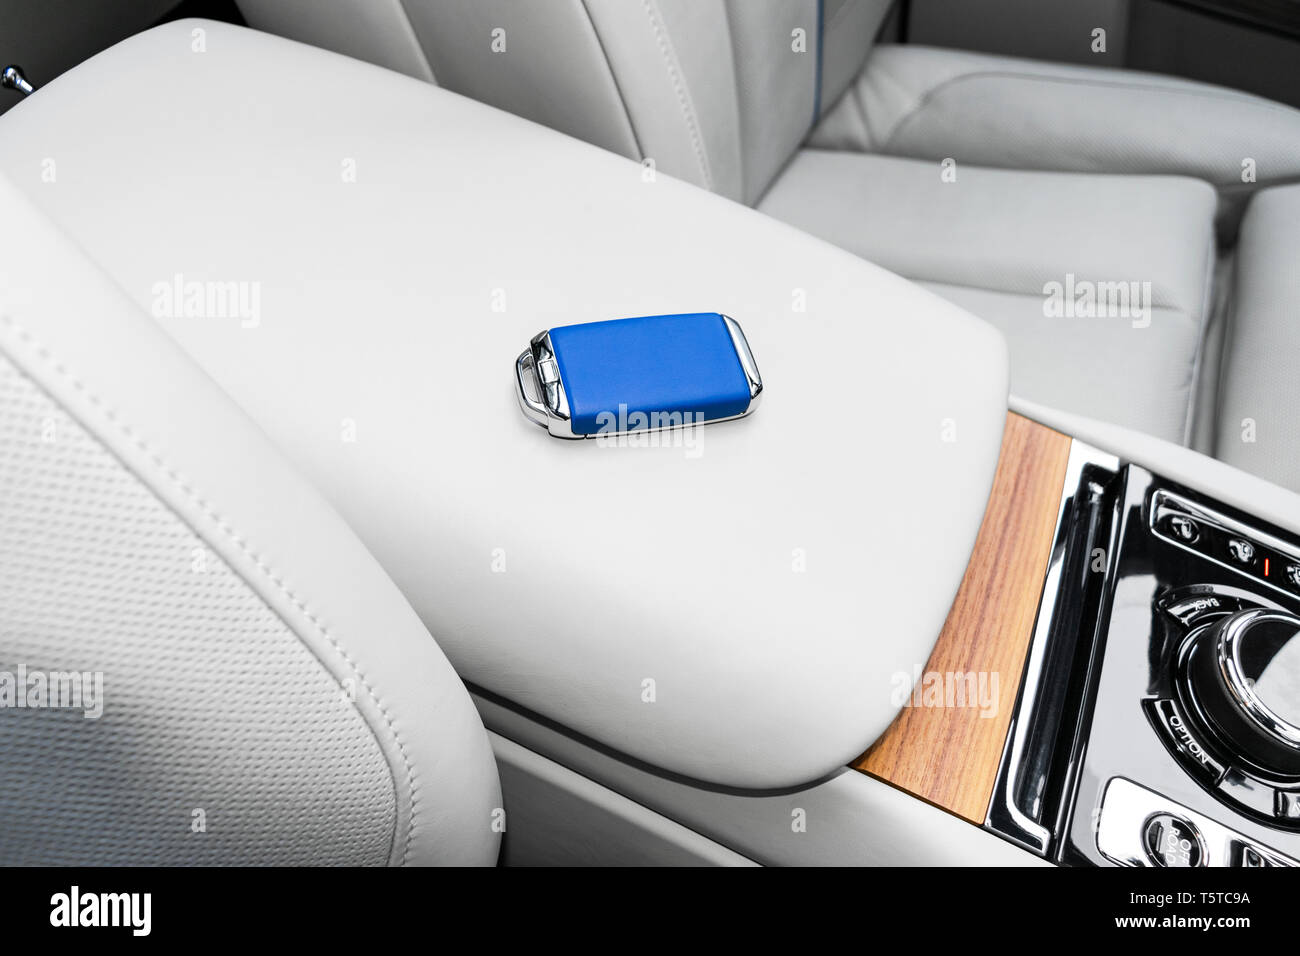 Closeup inside vehicle of wireless blue leather key ignition on